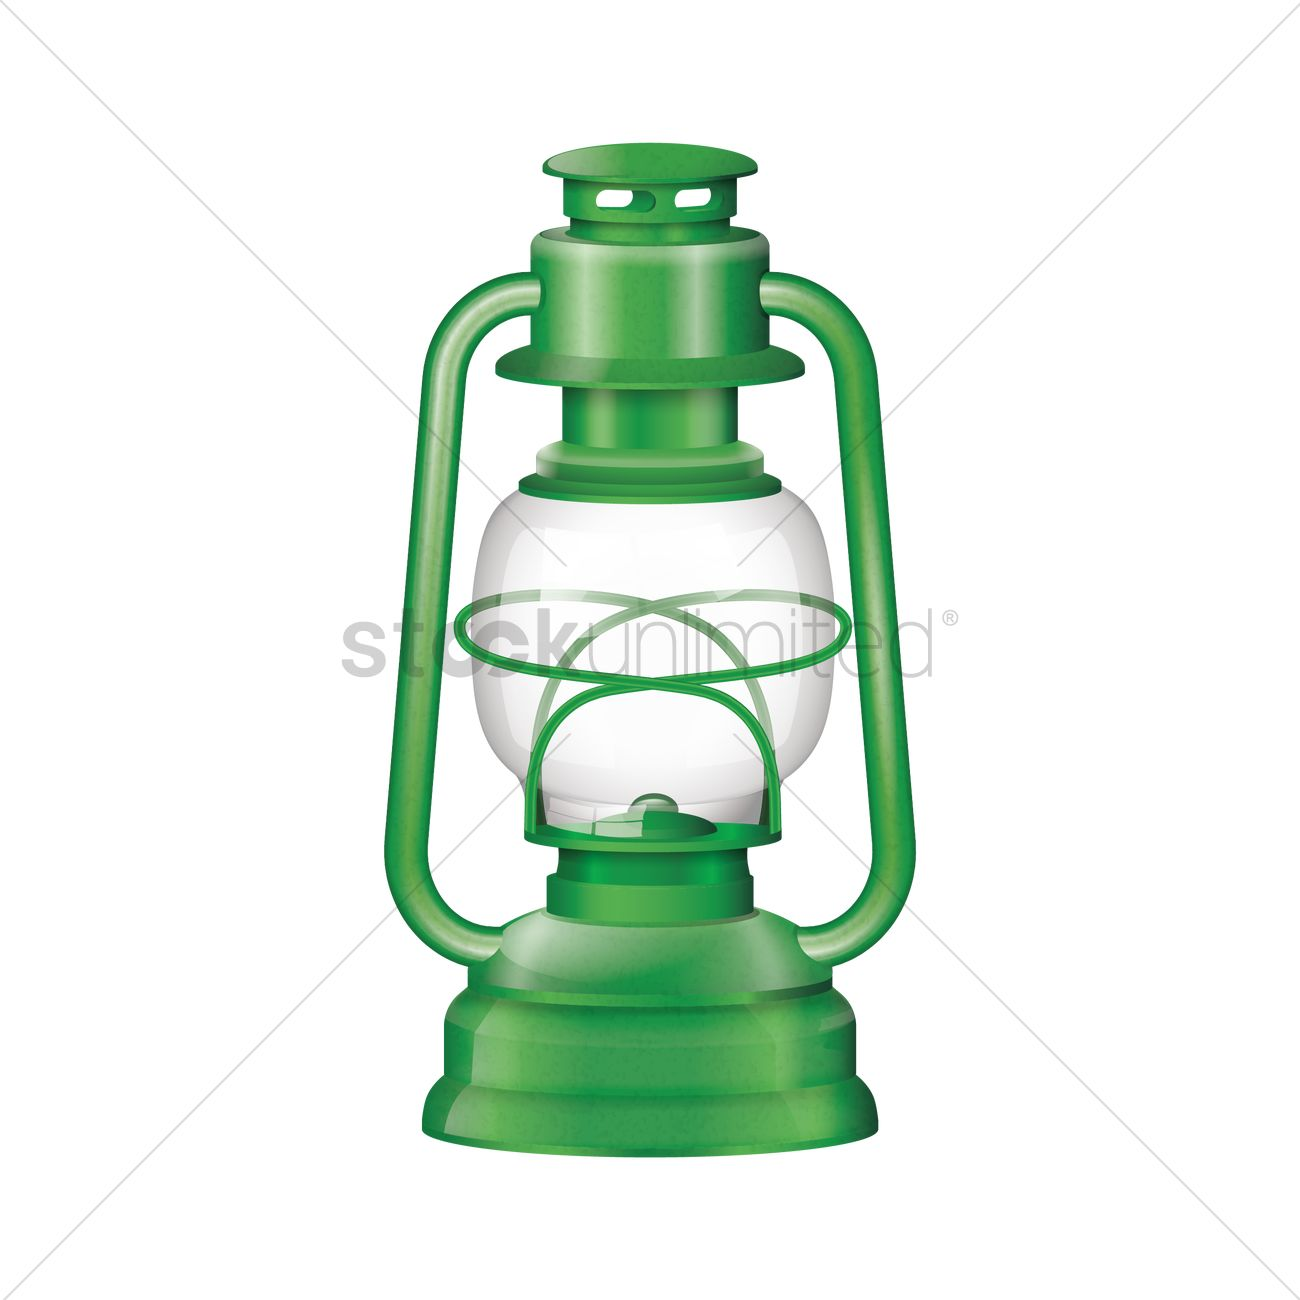 Camping lantern Vector Image - 1809129 | StockUnlimited for Camping Lantern Clipart  70ref